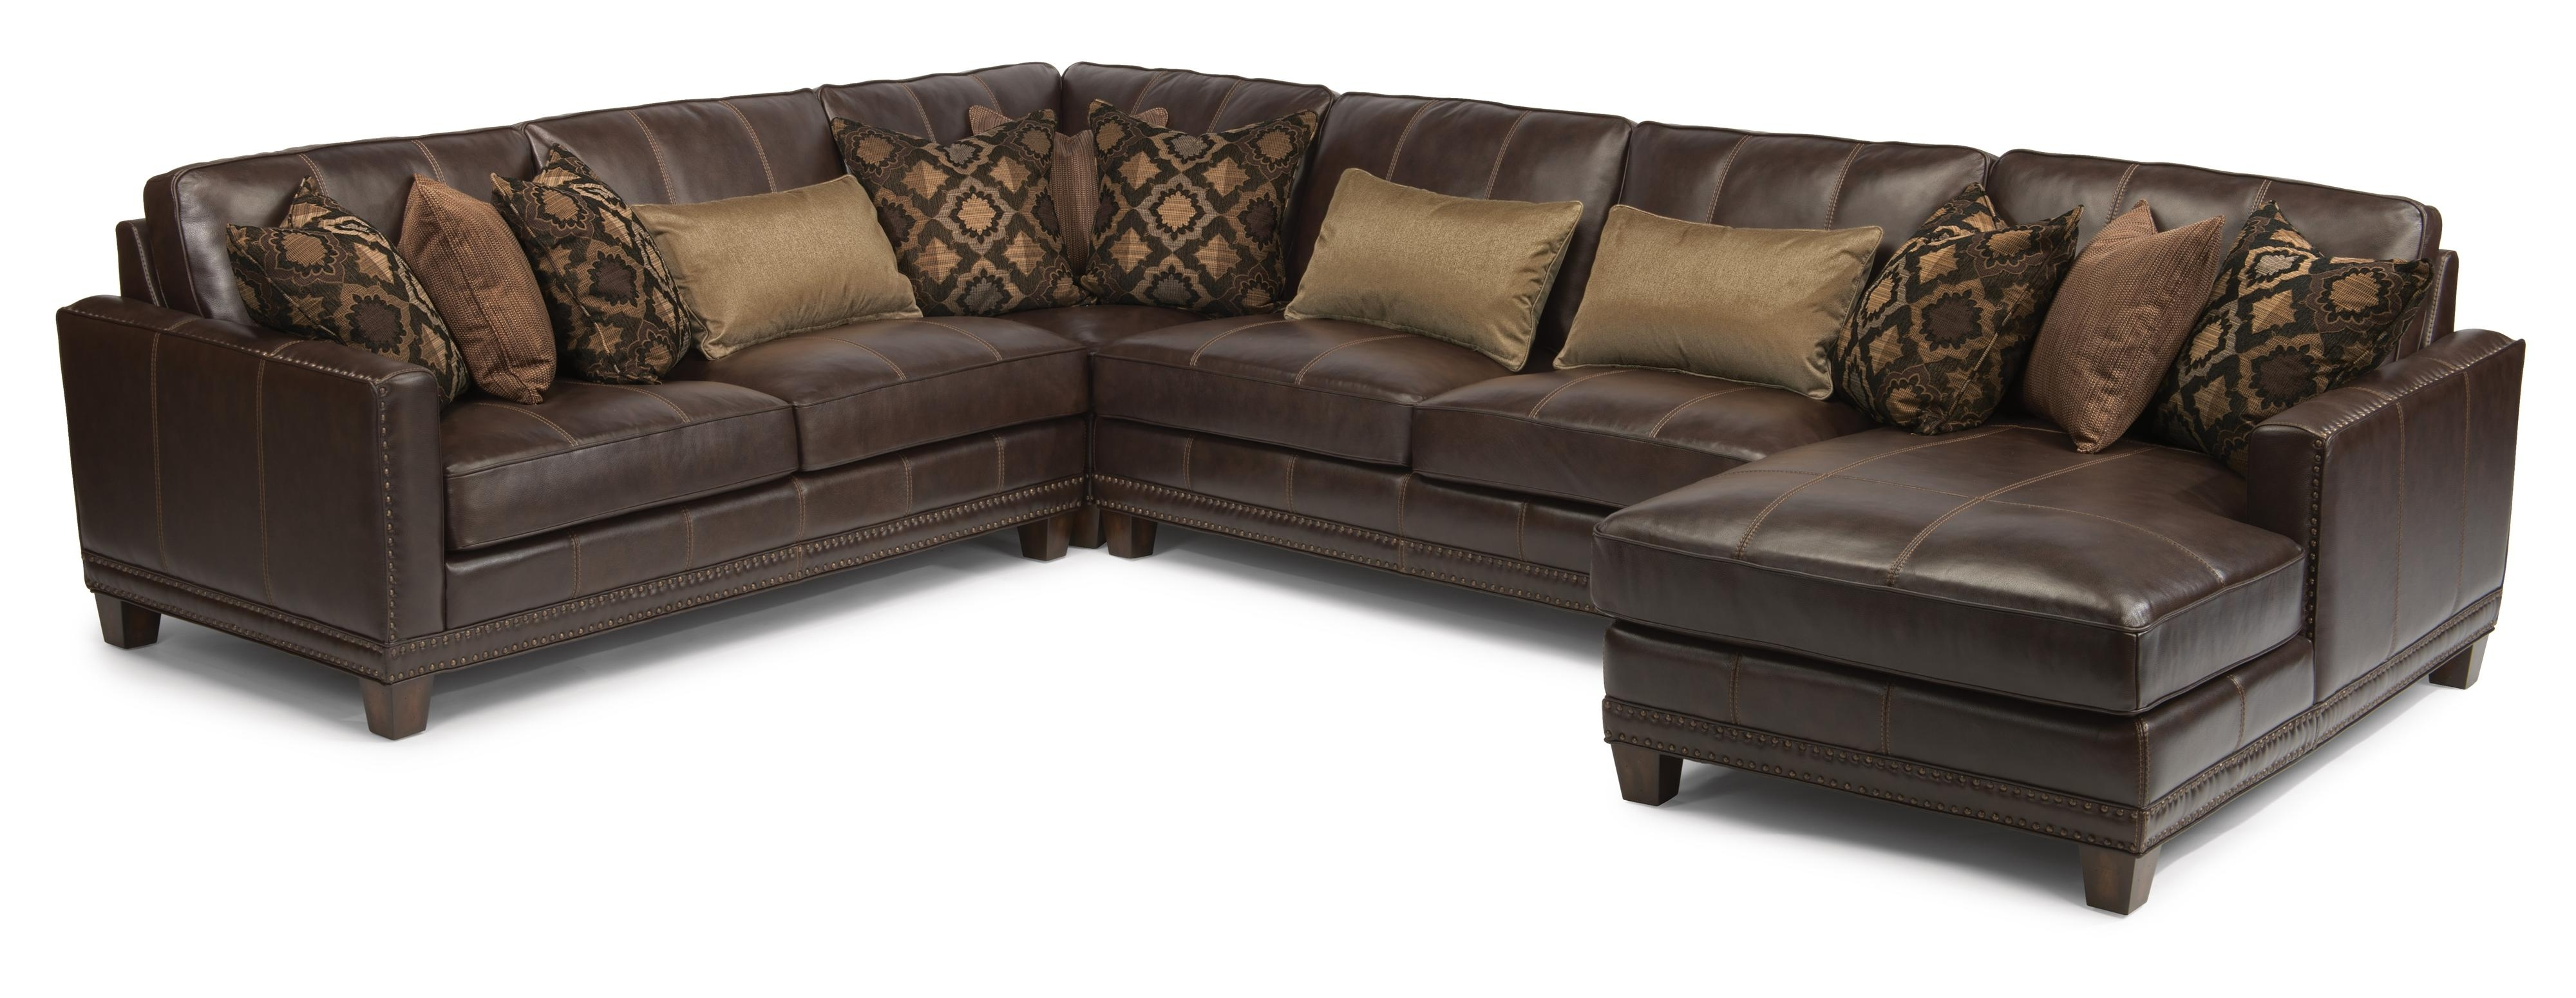 Flexsteel Latitudes – Port Royal Transitional Four Piece Sectional Intended For Fashionable Royal Furniture Sectional Sofas (View 5 of 15)